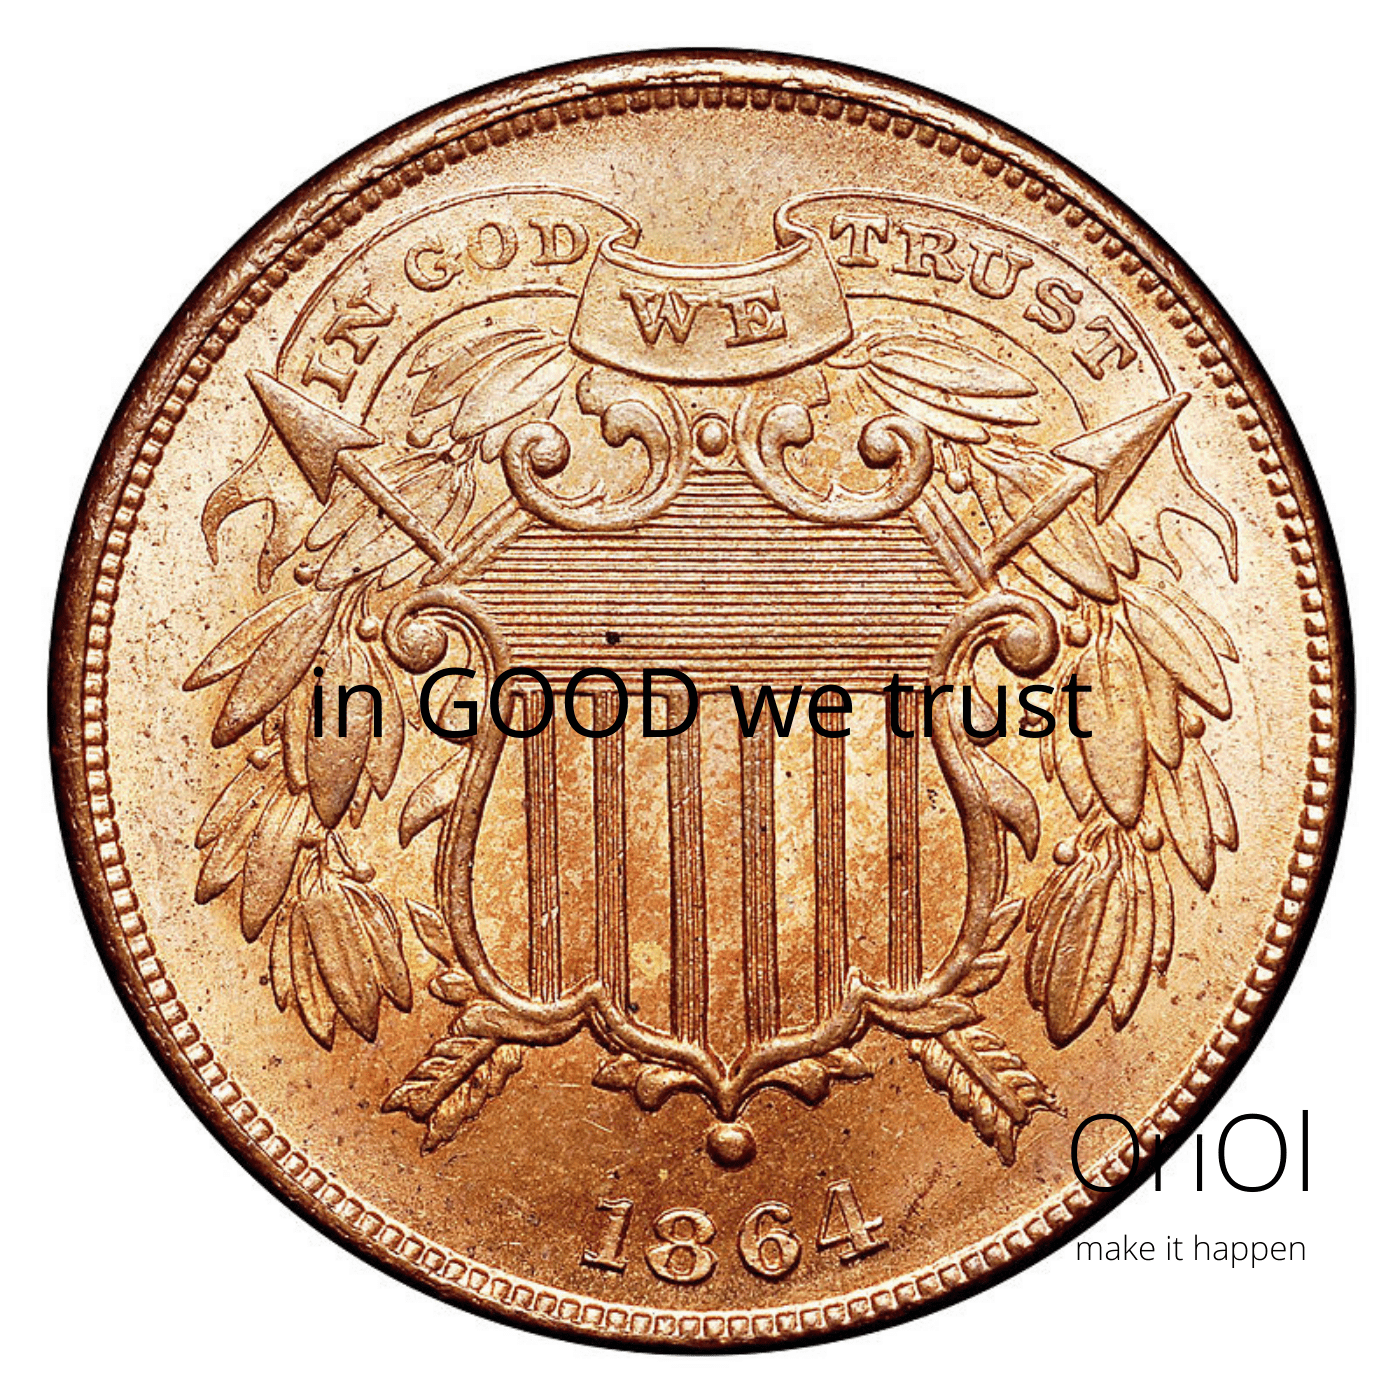 In GOOD we trust